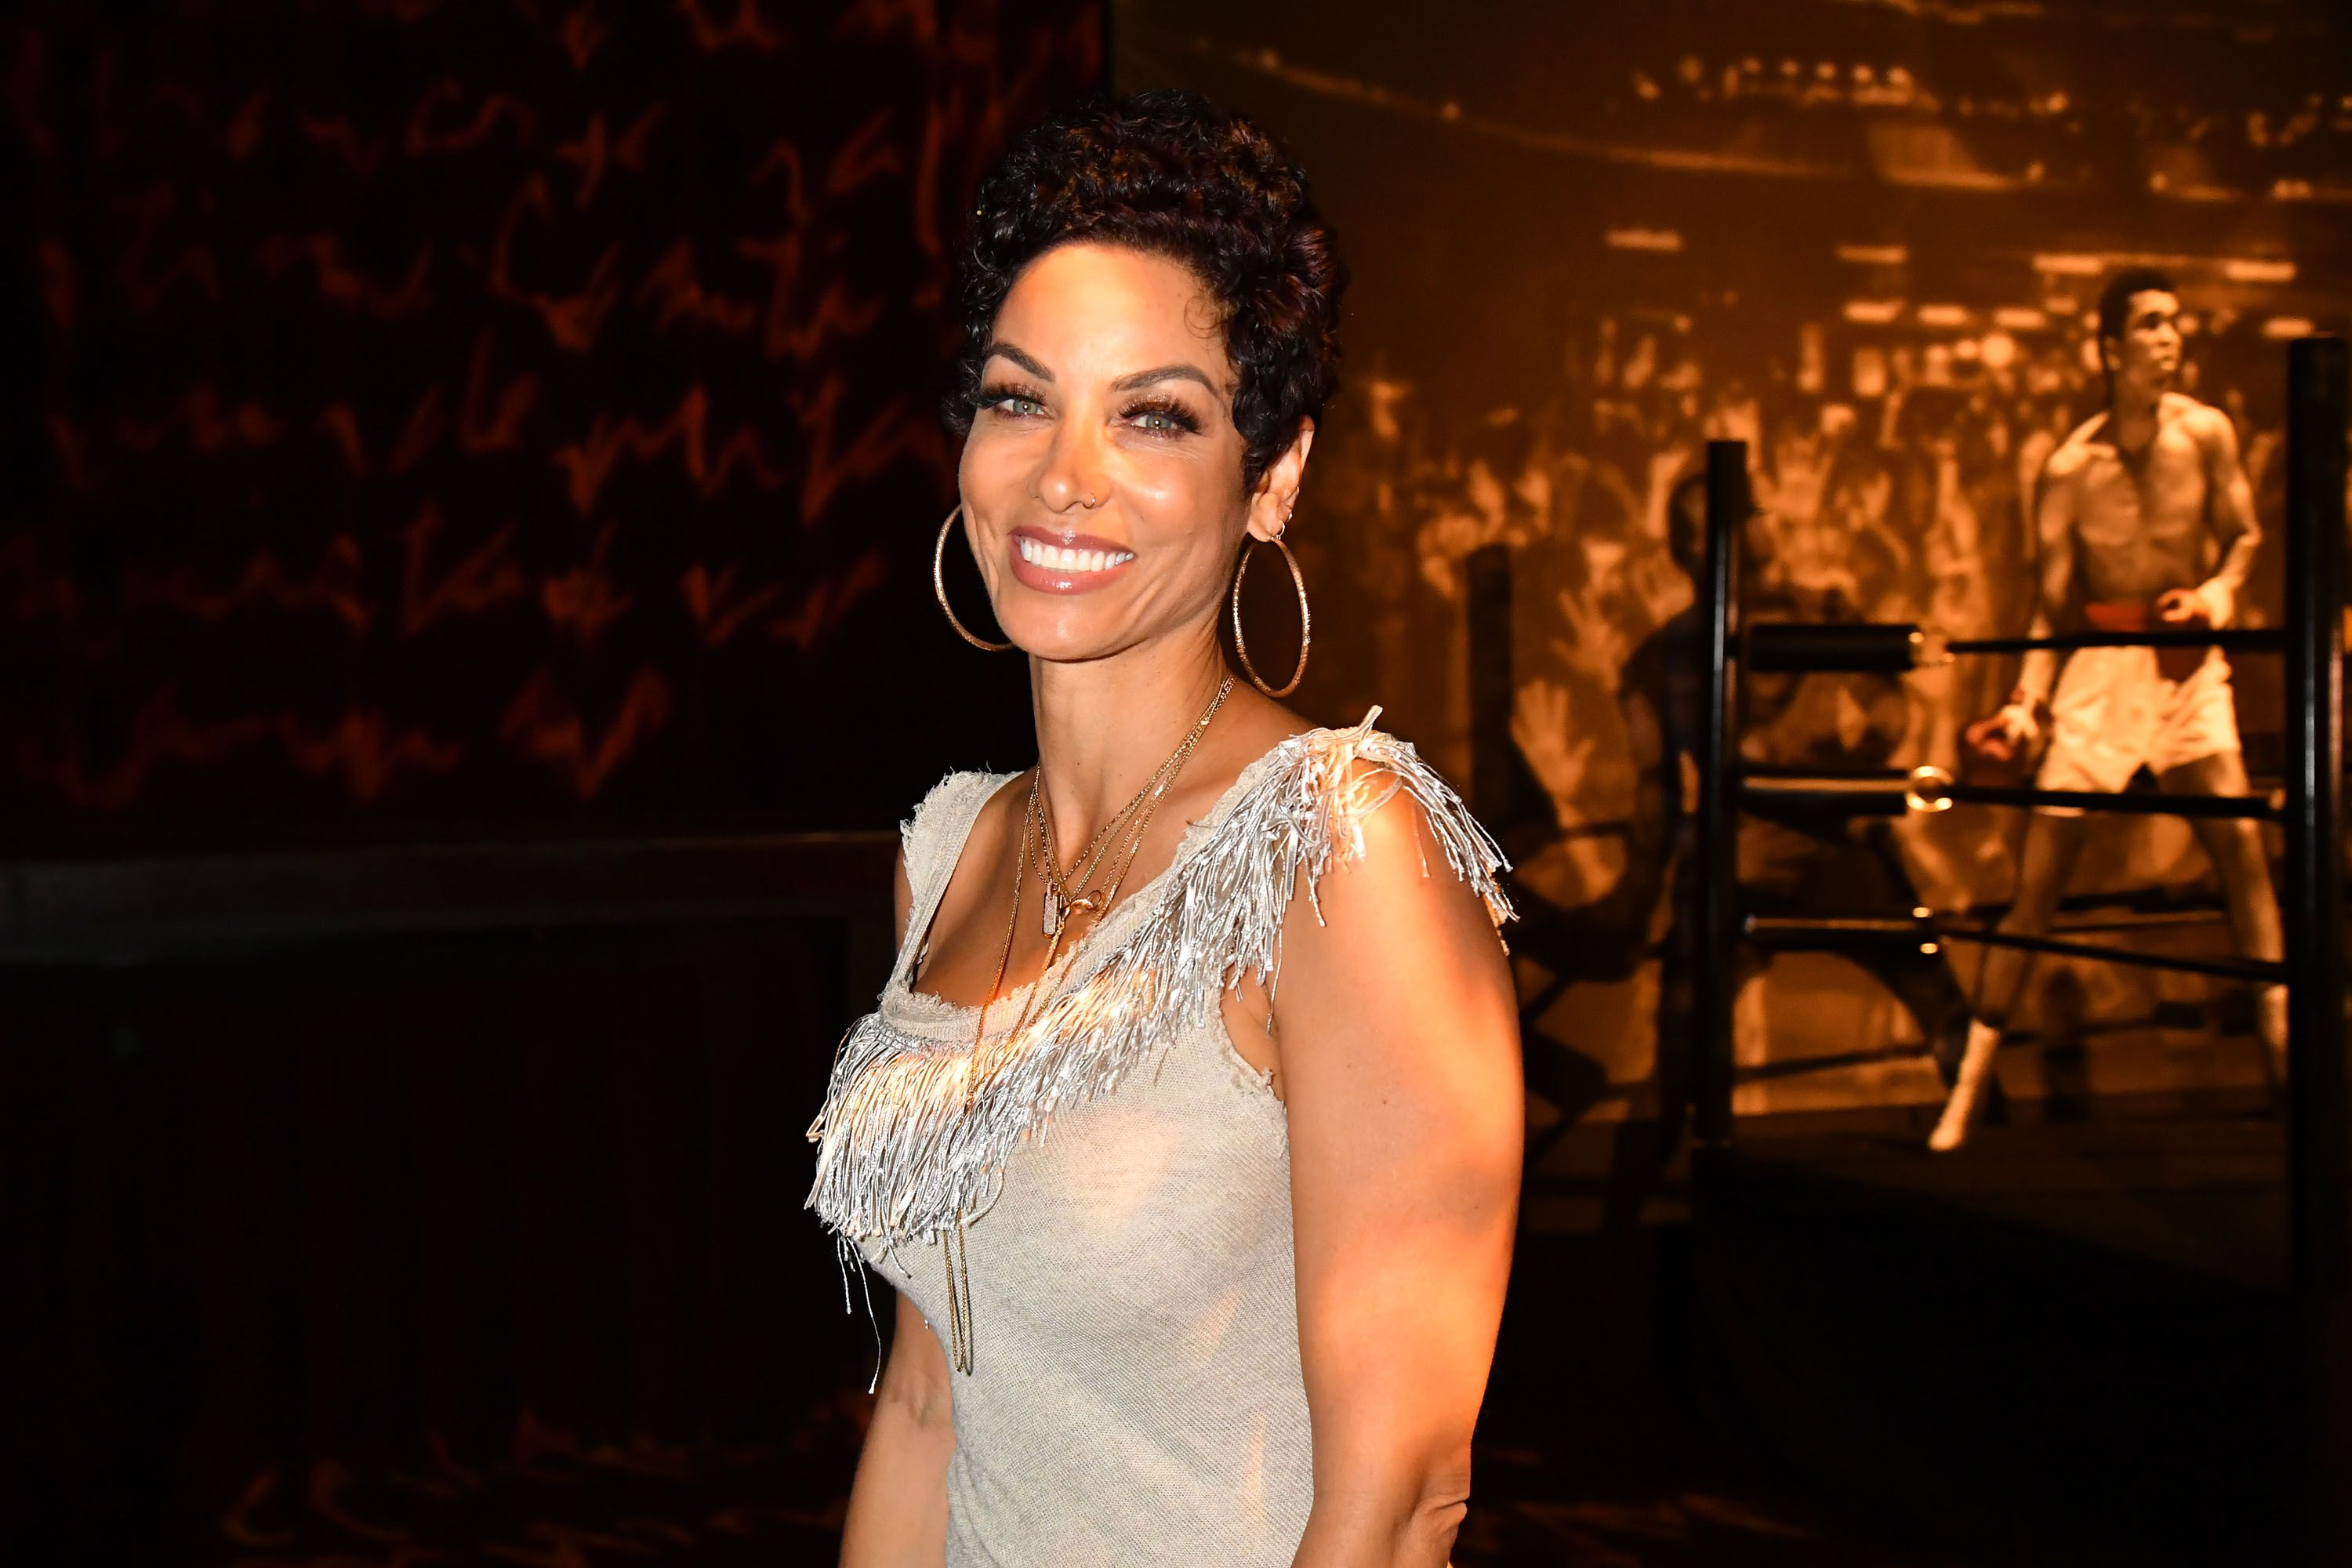 """Nicole Murphy attends the after-party for the Los Angeles premiere of """"What's My Name   Muhammad Ali"""" from HBO on May 08, 2019 in Los Angeles, California.   Source: Getty Images"""